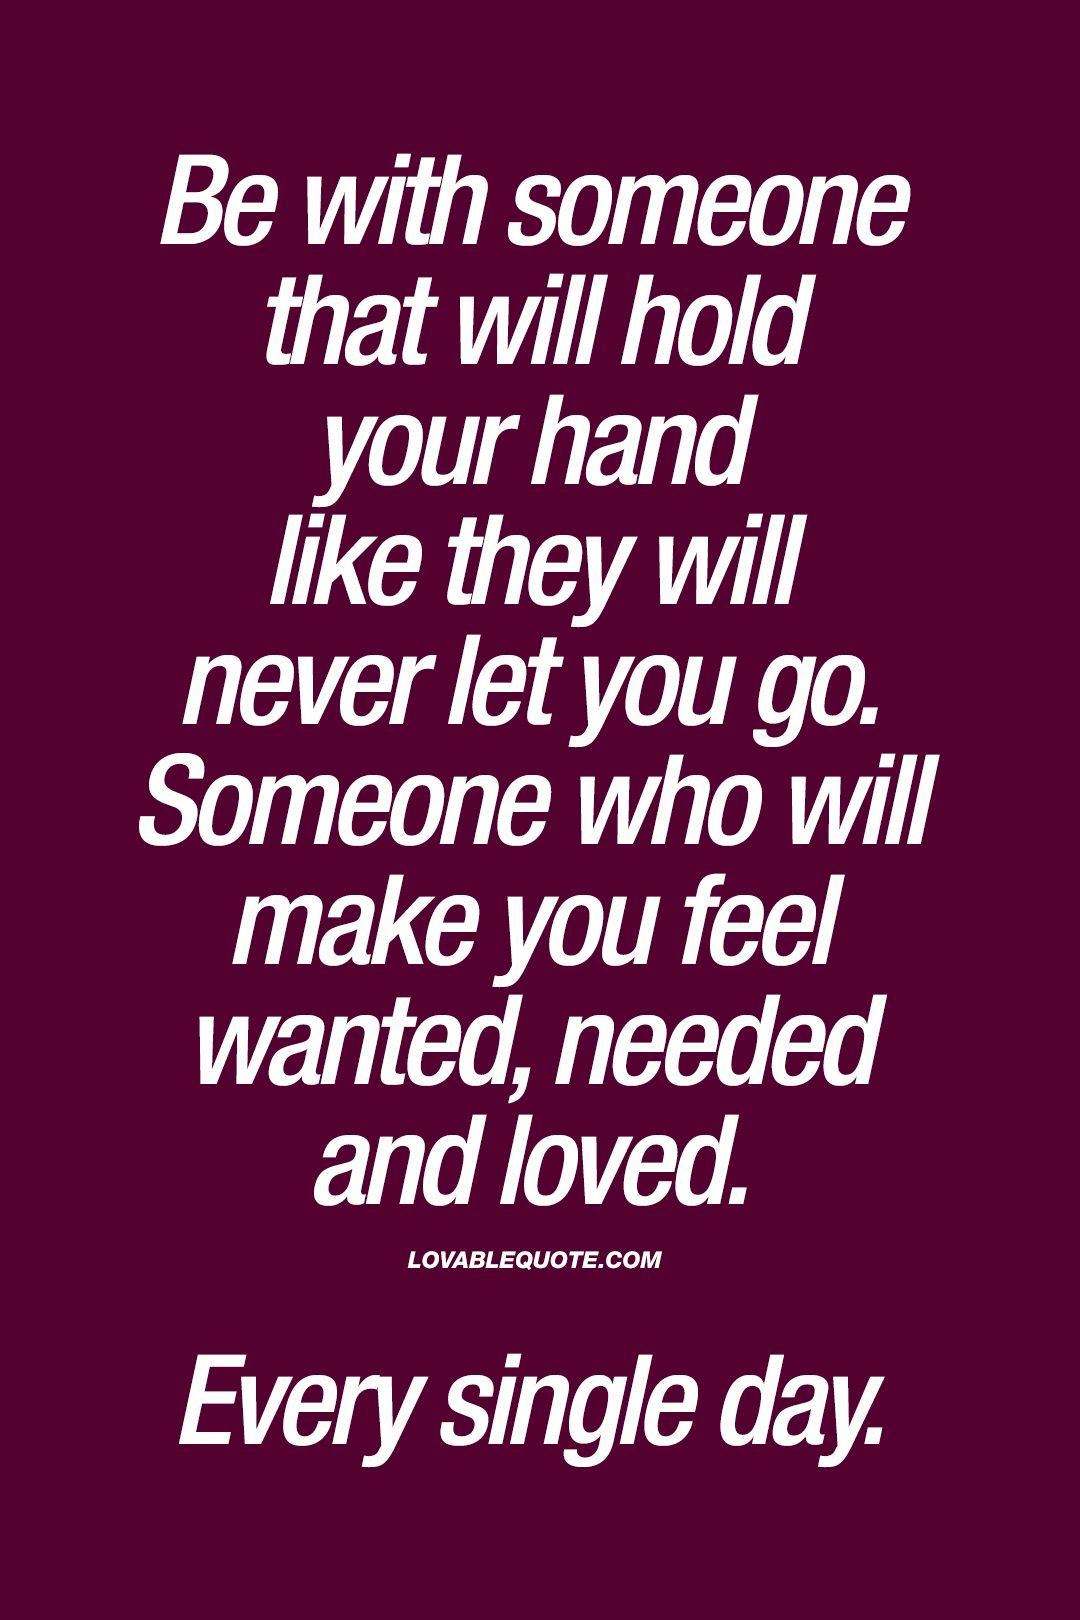 Be with someone that will hold your hand like they will never let you go. Someone who will make you feel wanted, needed and loved. Every single day. | #true #love #forever #quote